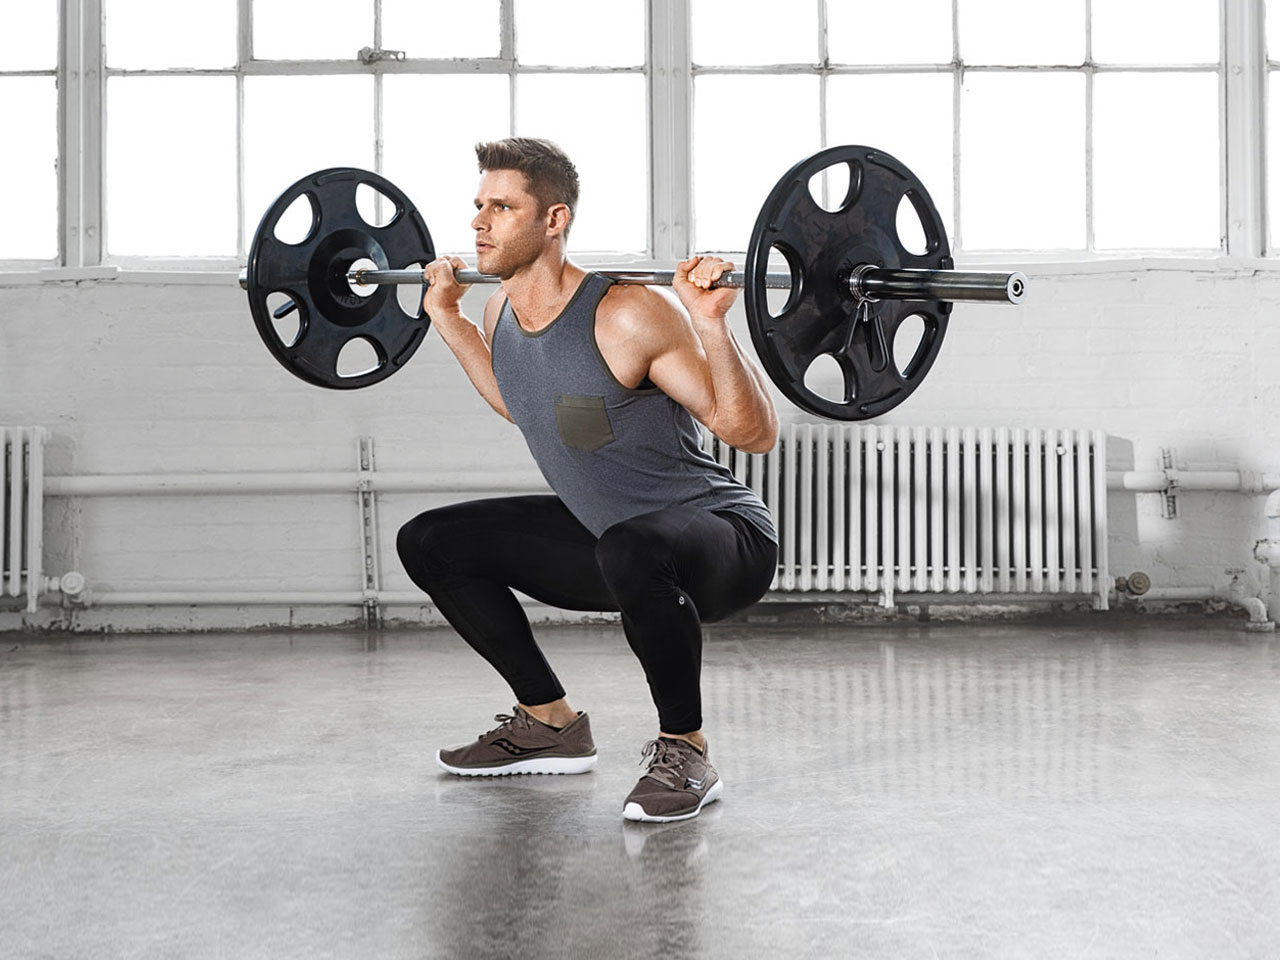 3 Key Squats Mistakes That Can Hamper Your Gain and Cause Injury